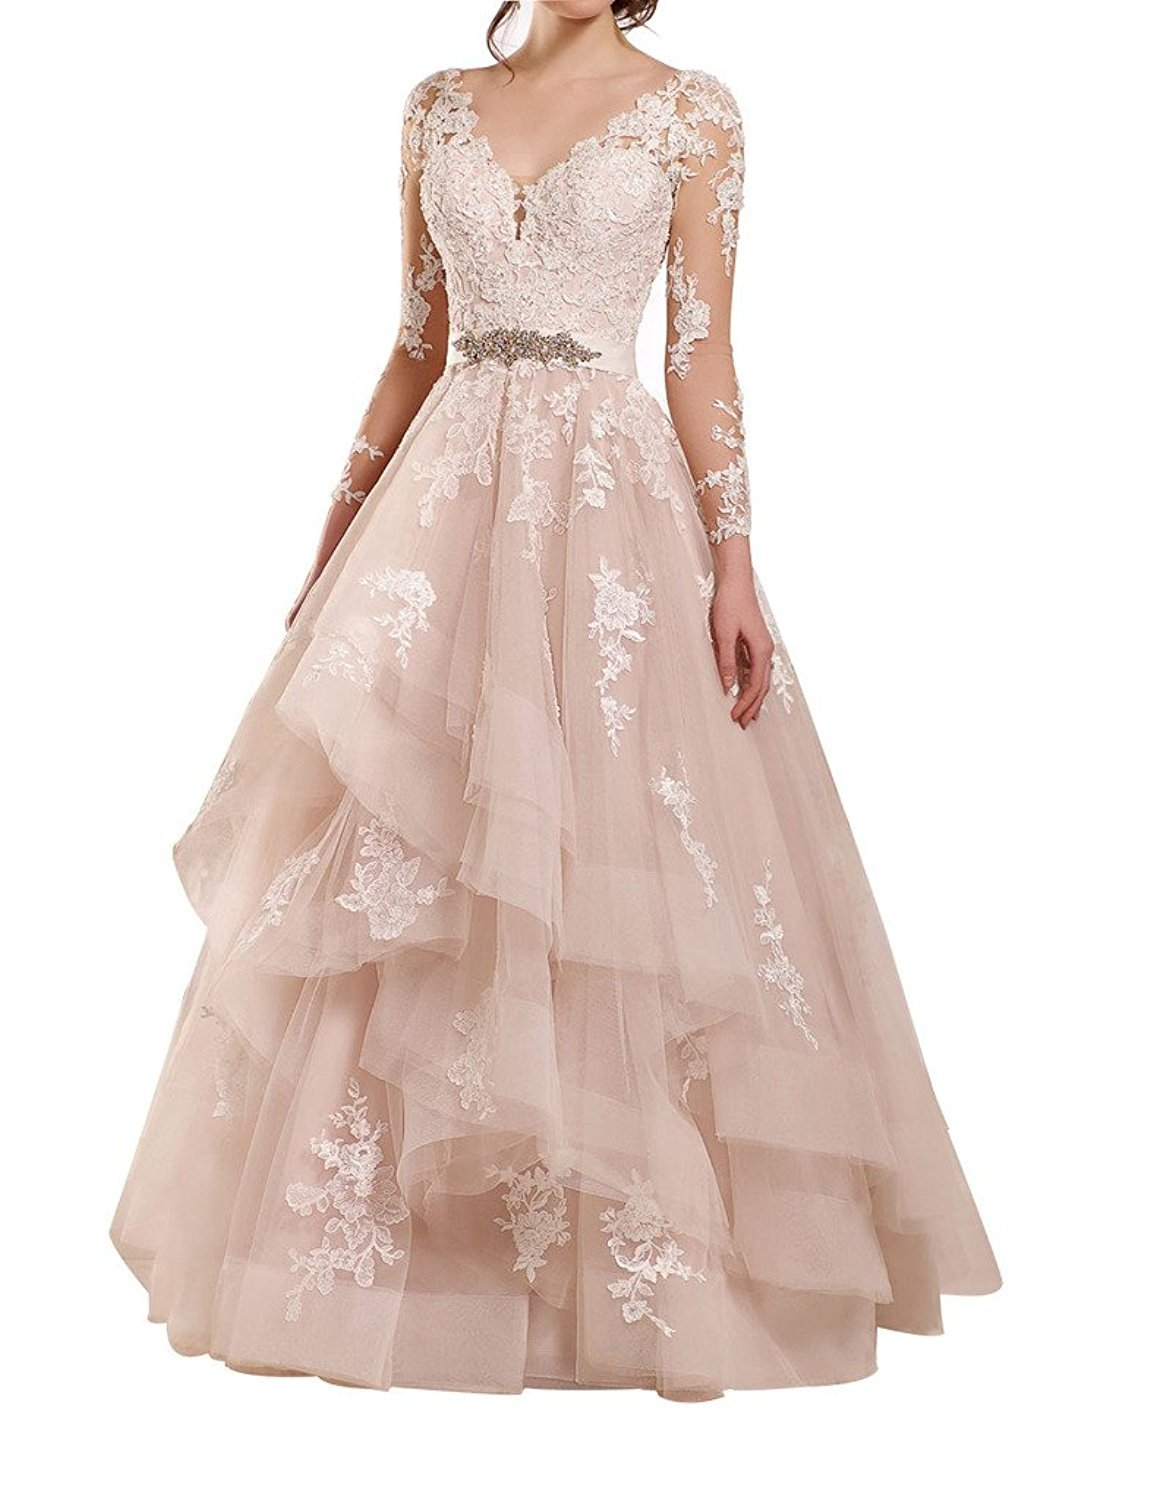 Fanciest Women's Double V Neck Lace Wedding Dresses Long Sleeves Ruffles Bridal Gowns Blush US20W